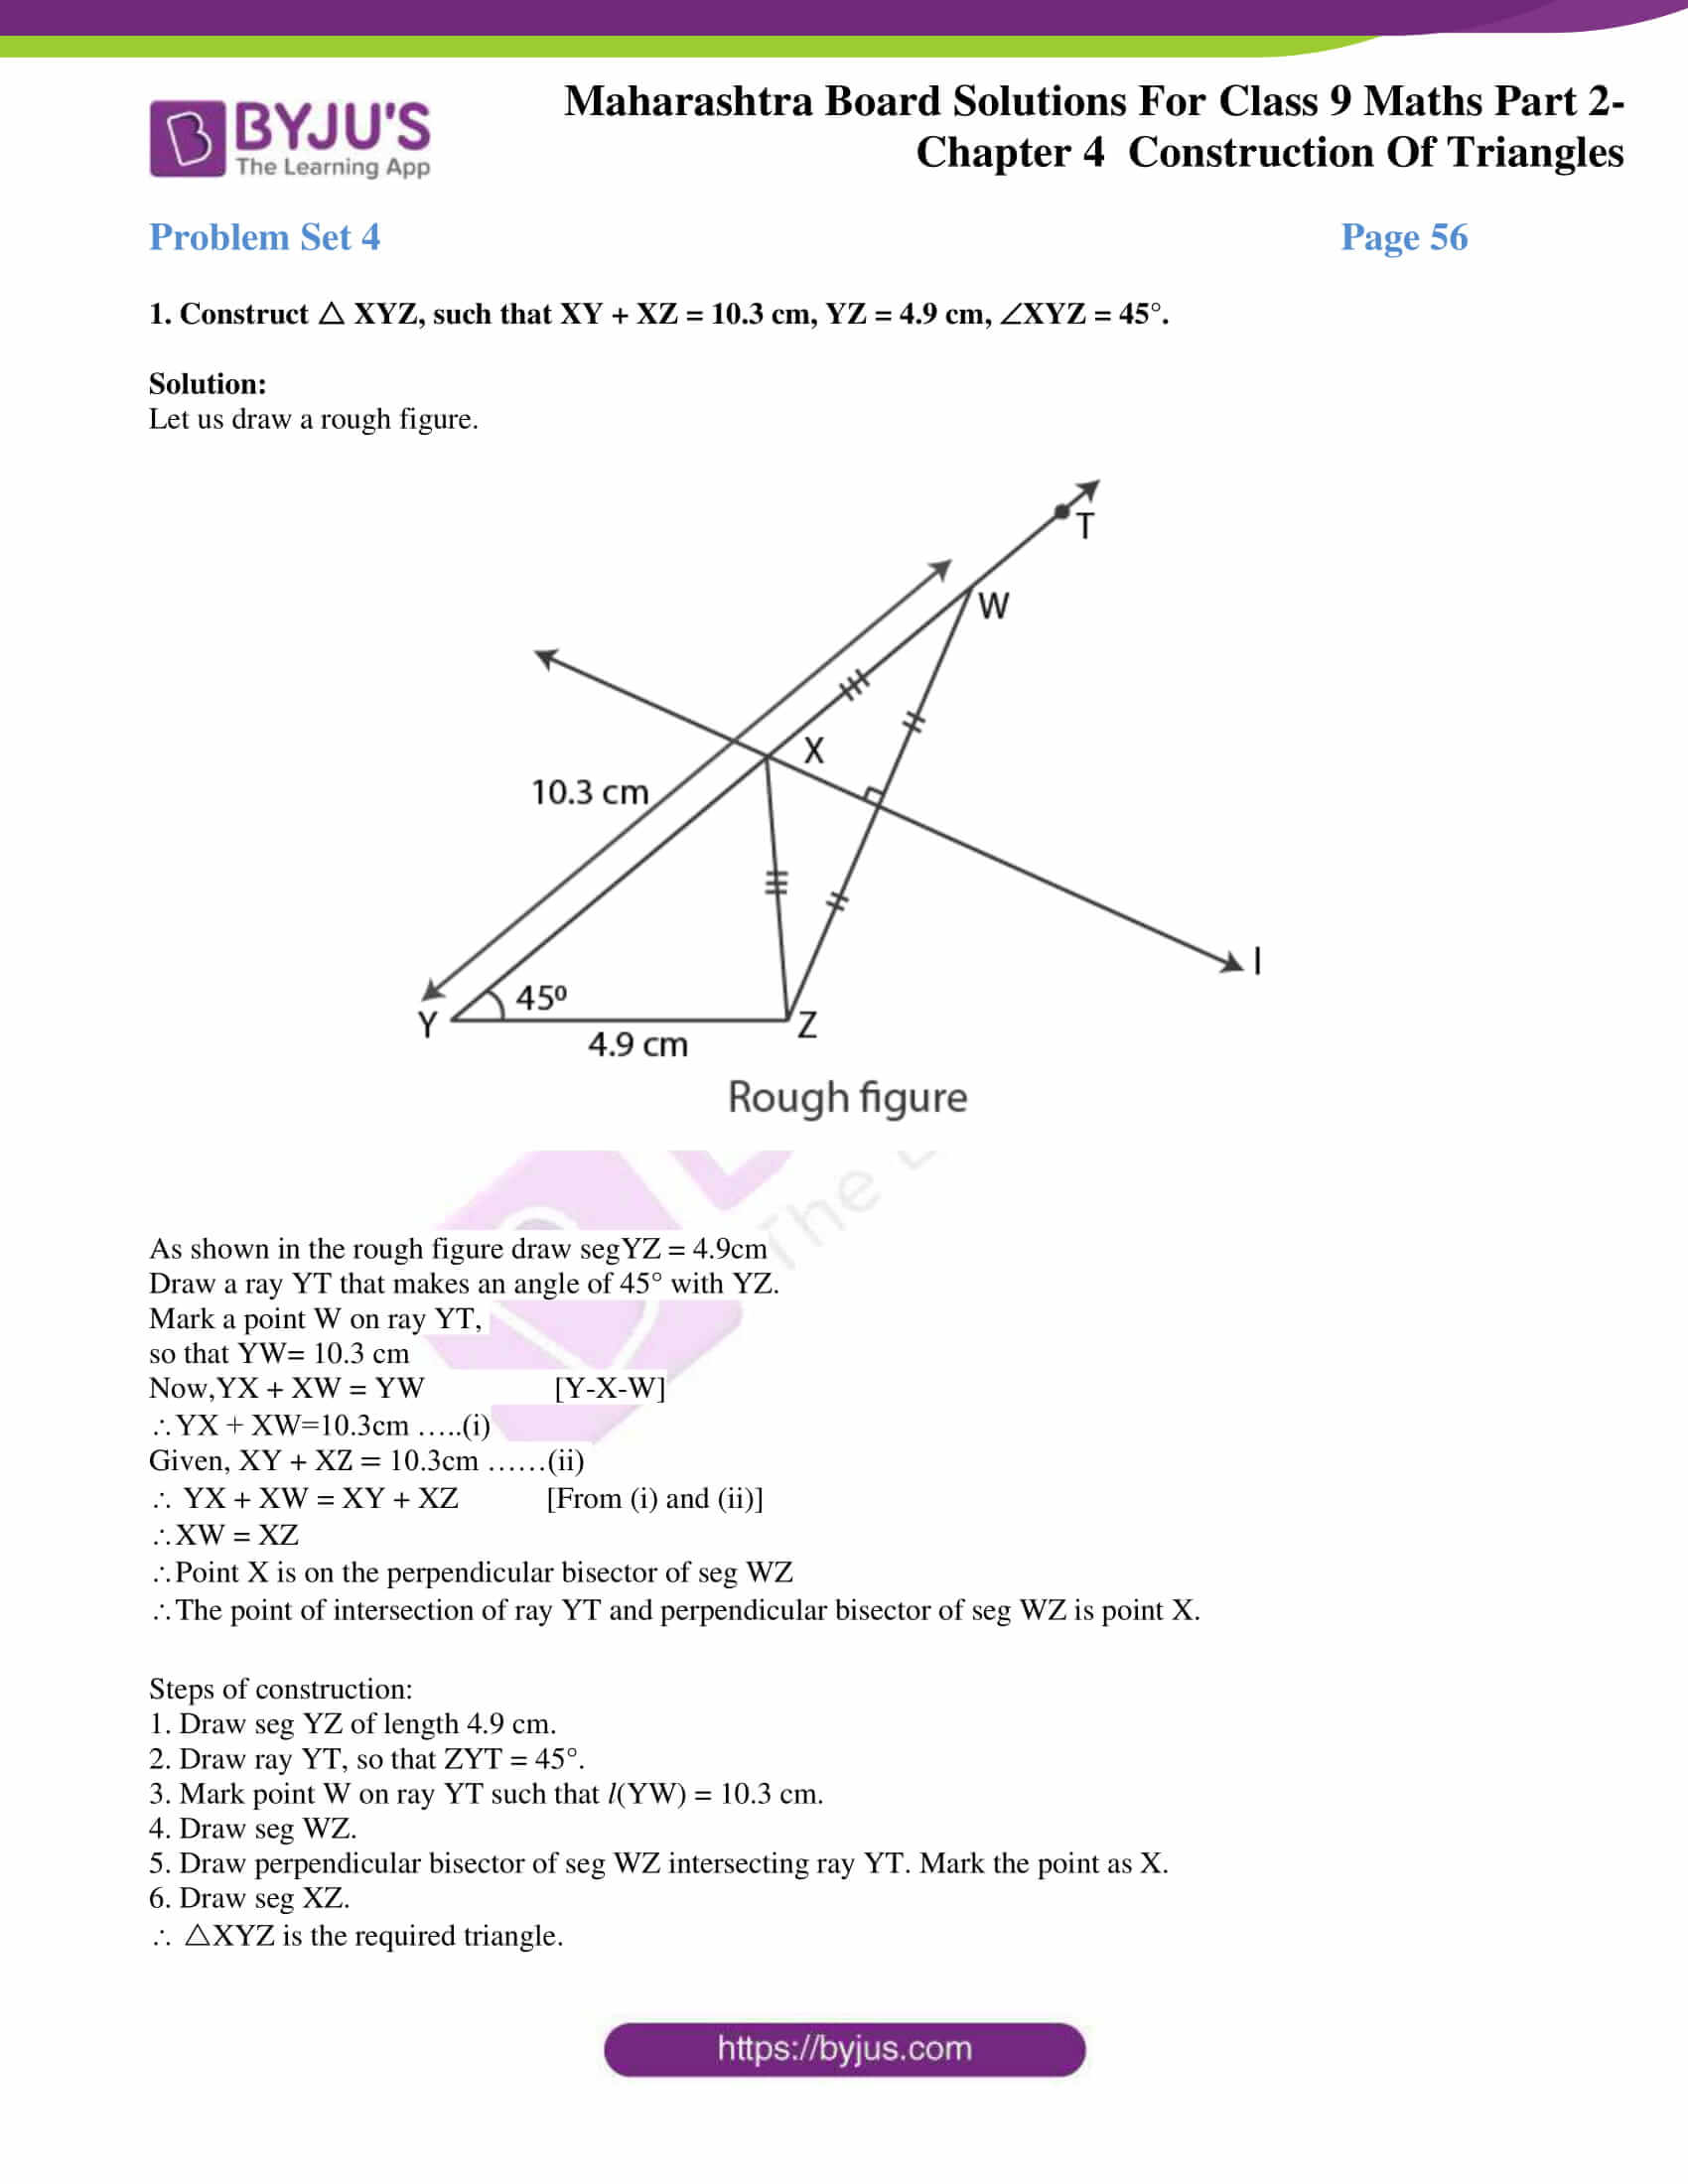 msbshse solutions for class 9 maths part 2 chapter 4 16